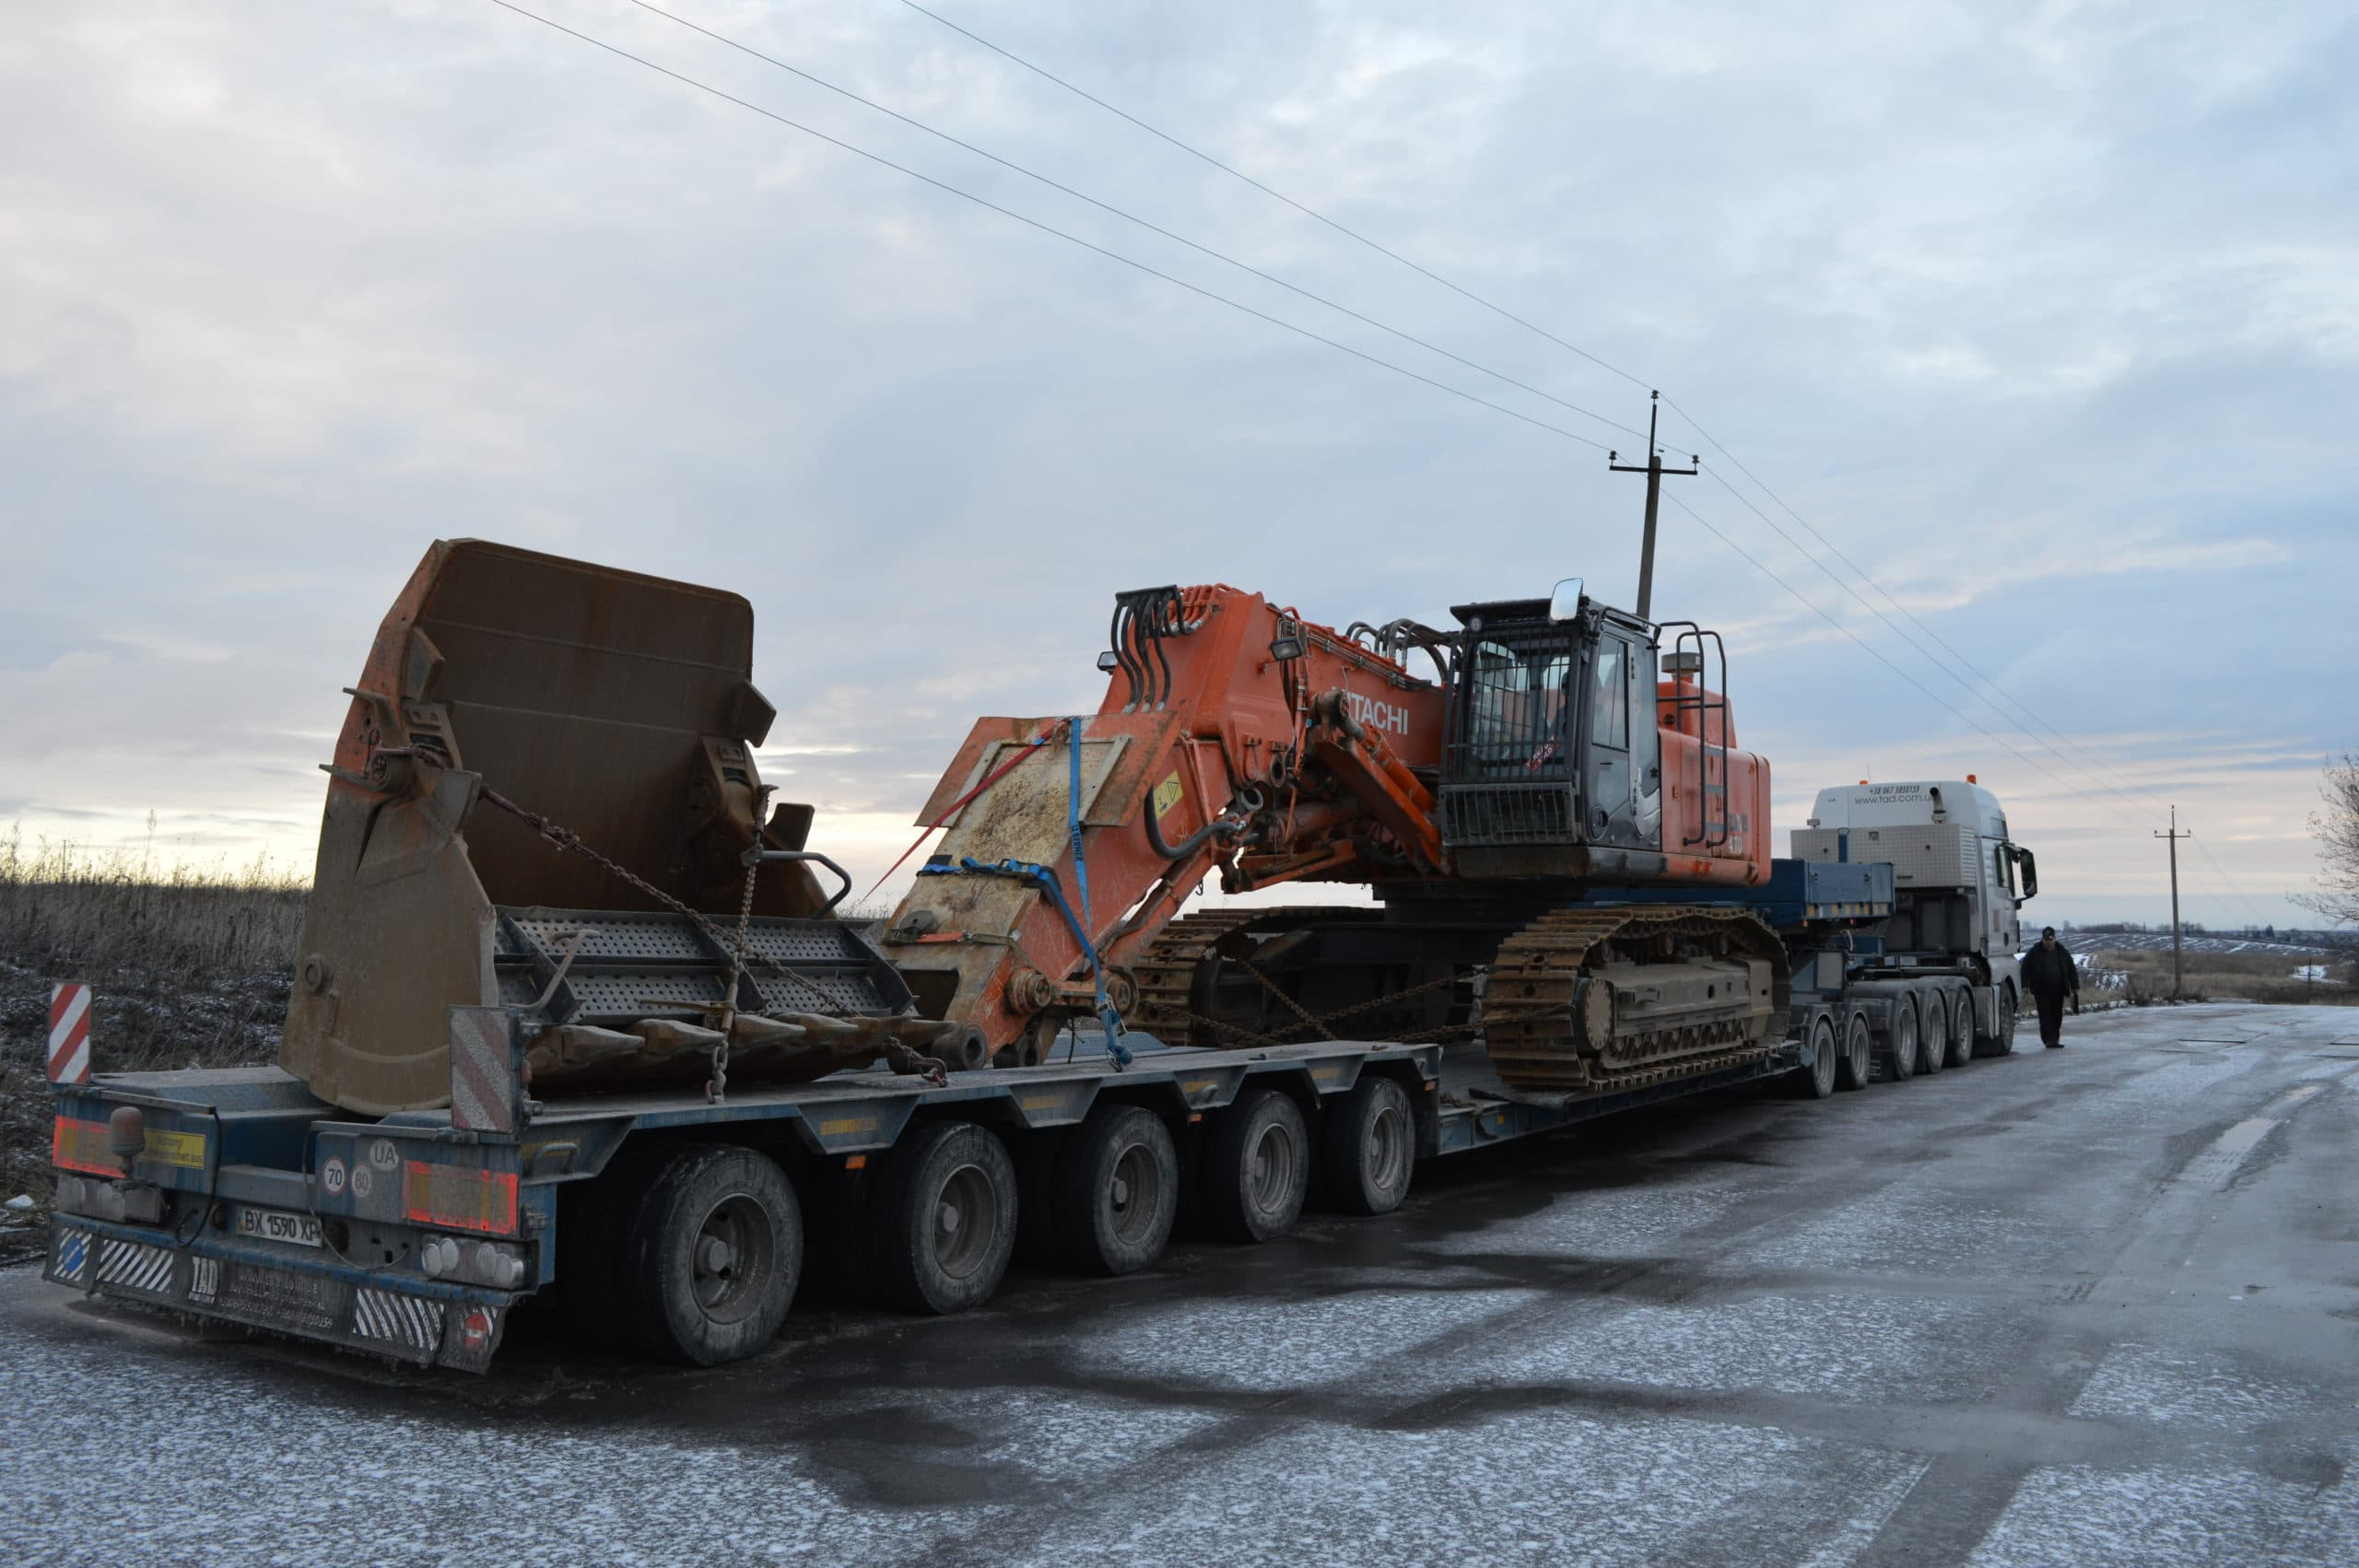 Hitachi Excavator Transportation